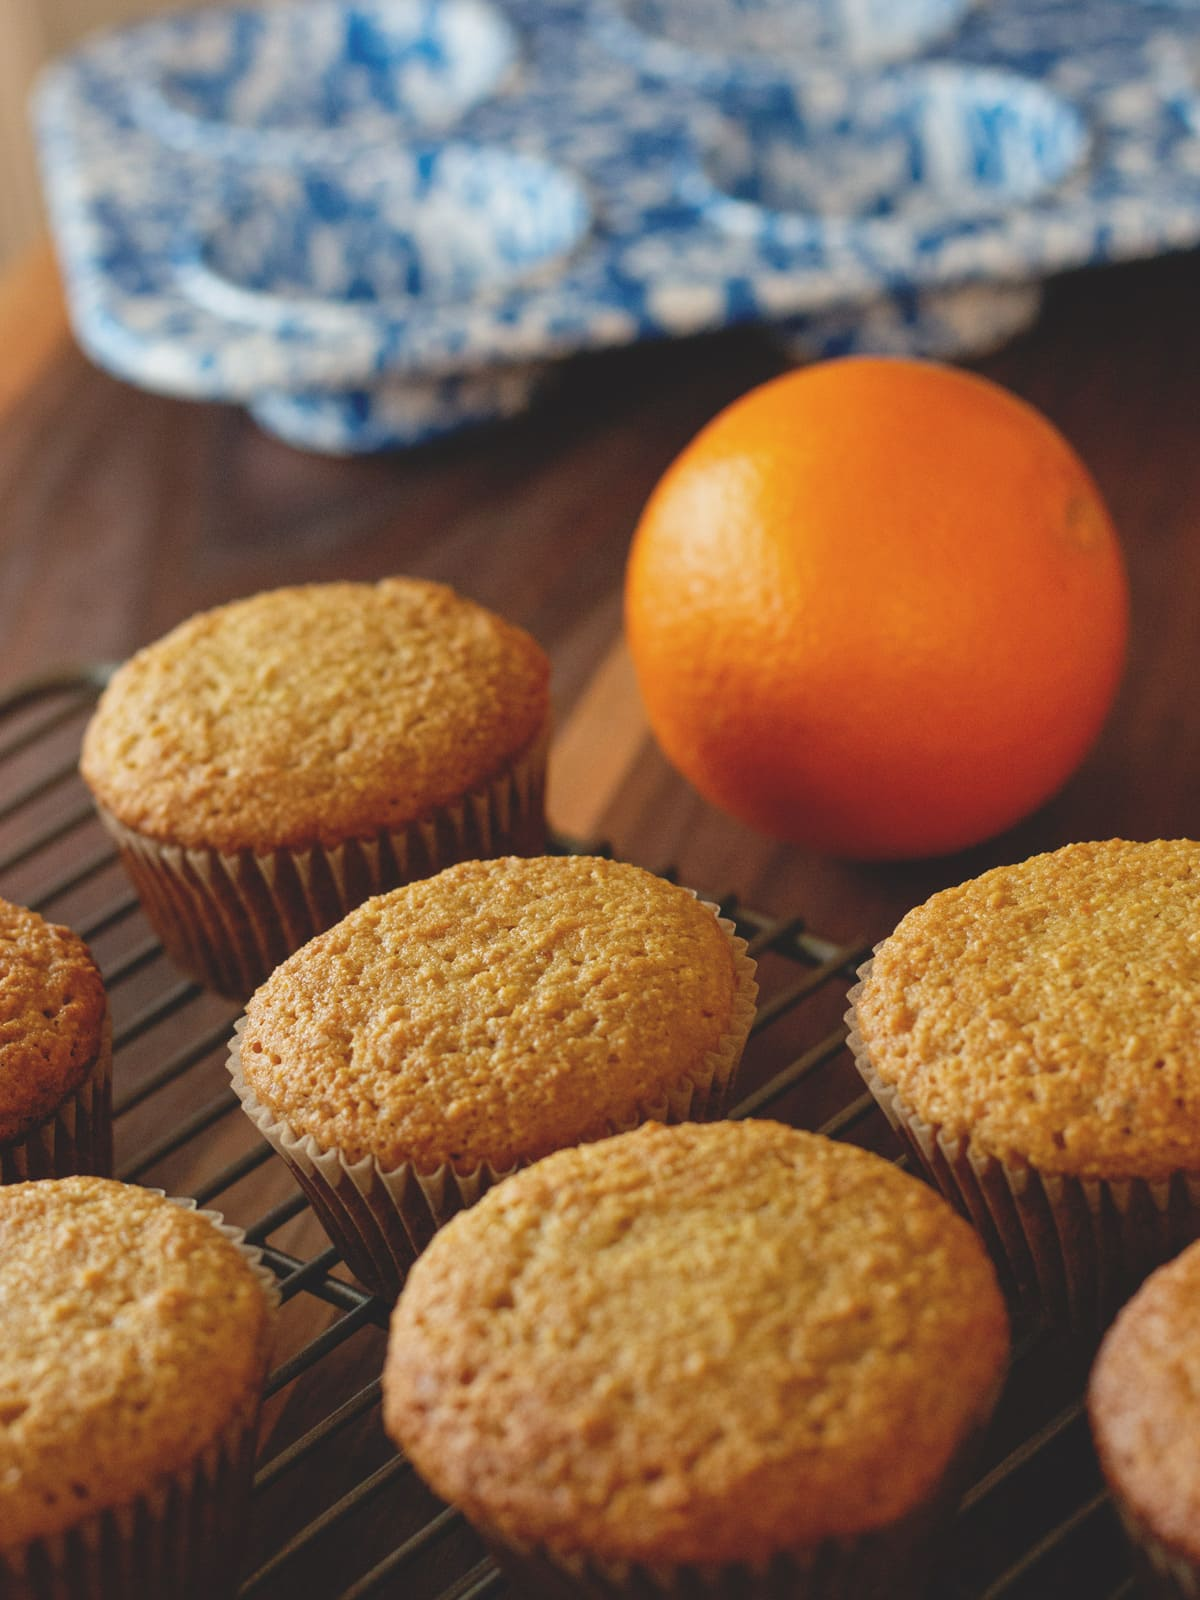 These paleo Orange Muffins are healthy and delicious breakfast muffins, made from scratch with orange juice and orange zest.